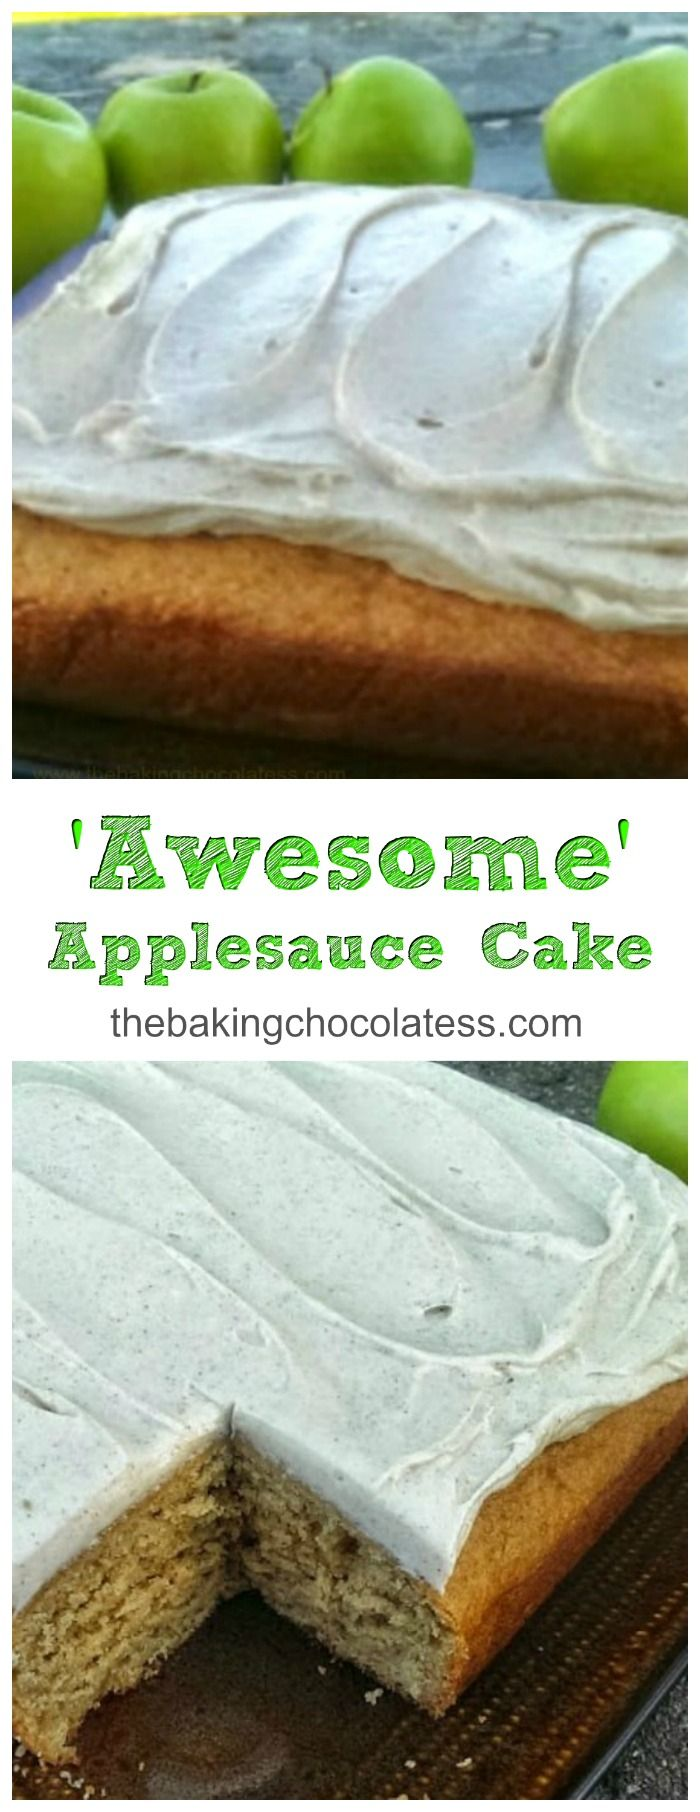 'Awesome' Applesauce Cake (Cinnamon Cream Cheese Frosting) #applerecipes